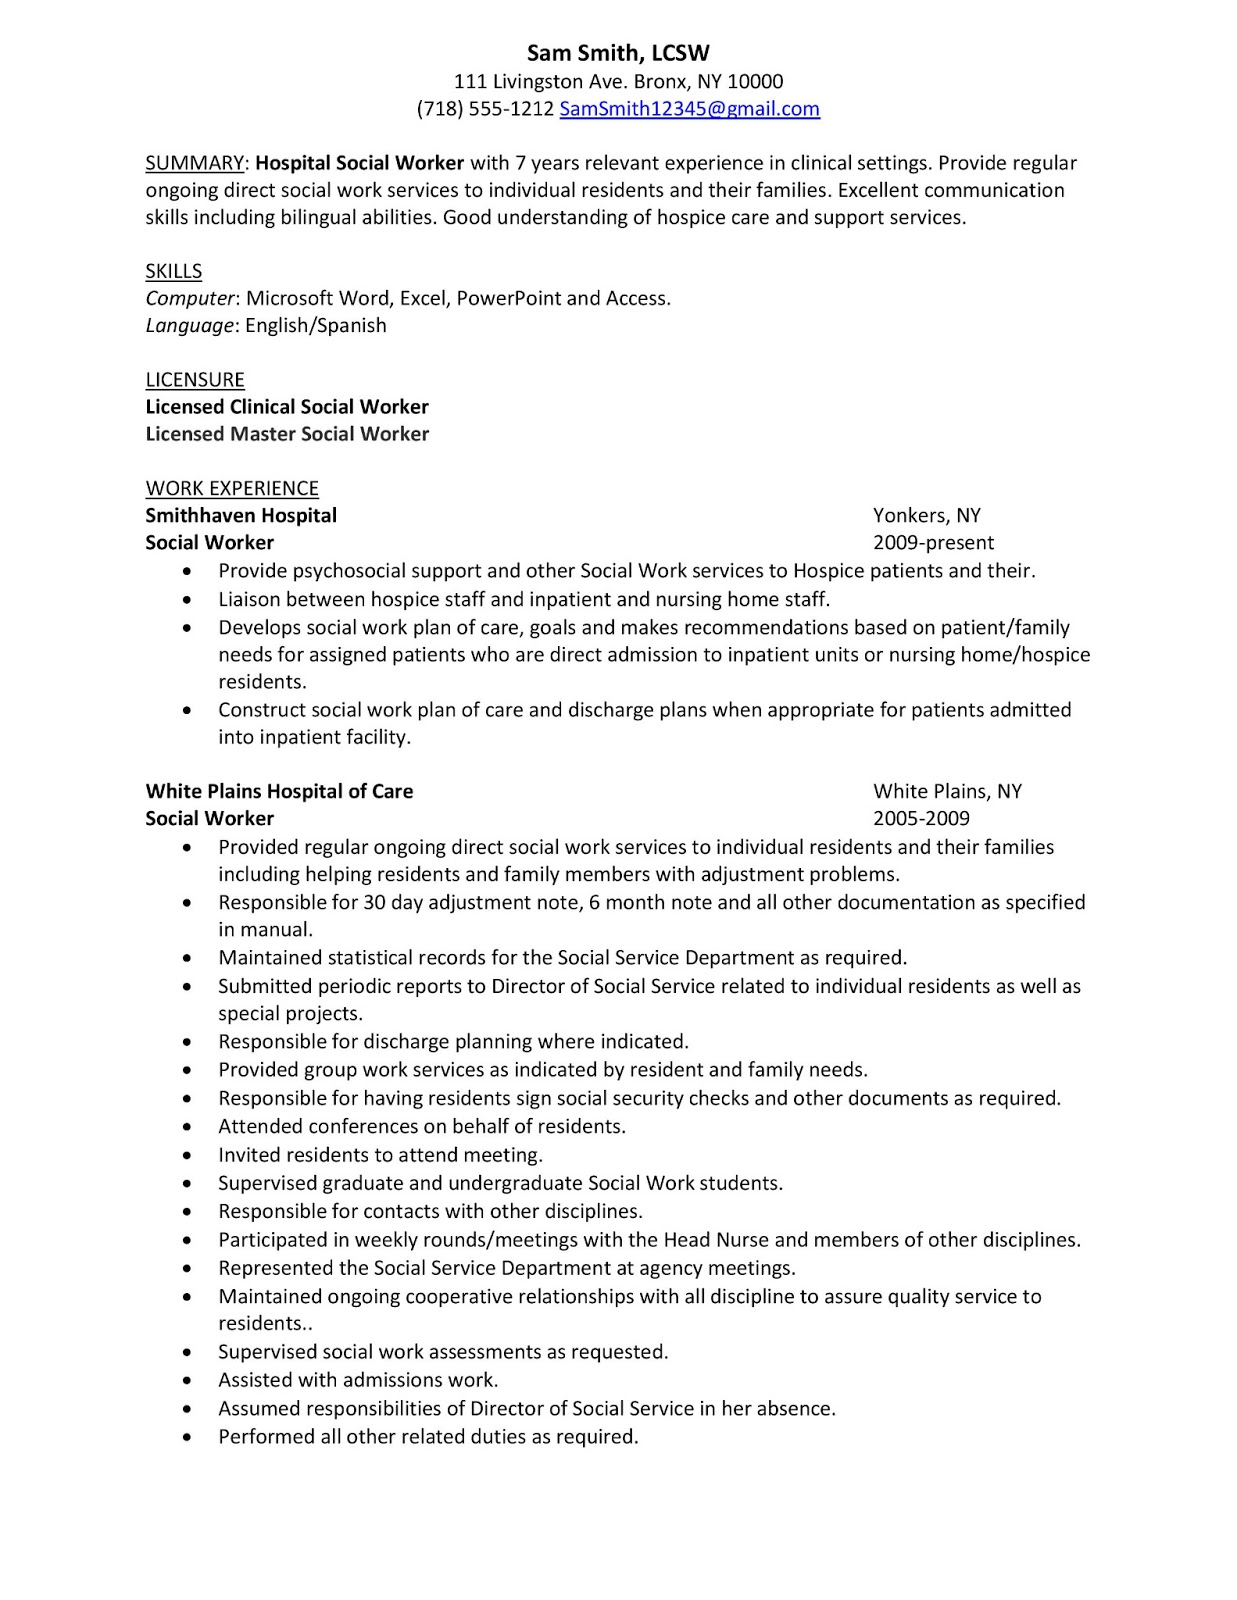 sample resume hospital social worker - Social Worker Resume